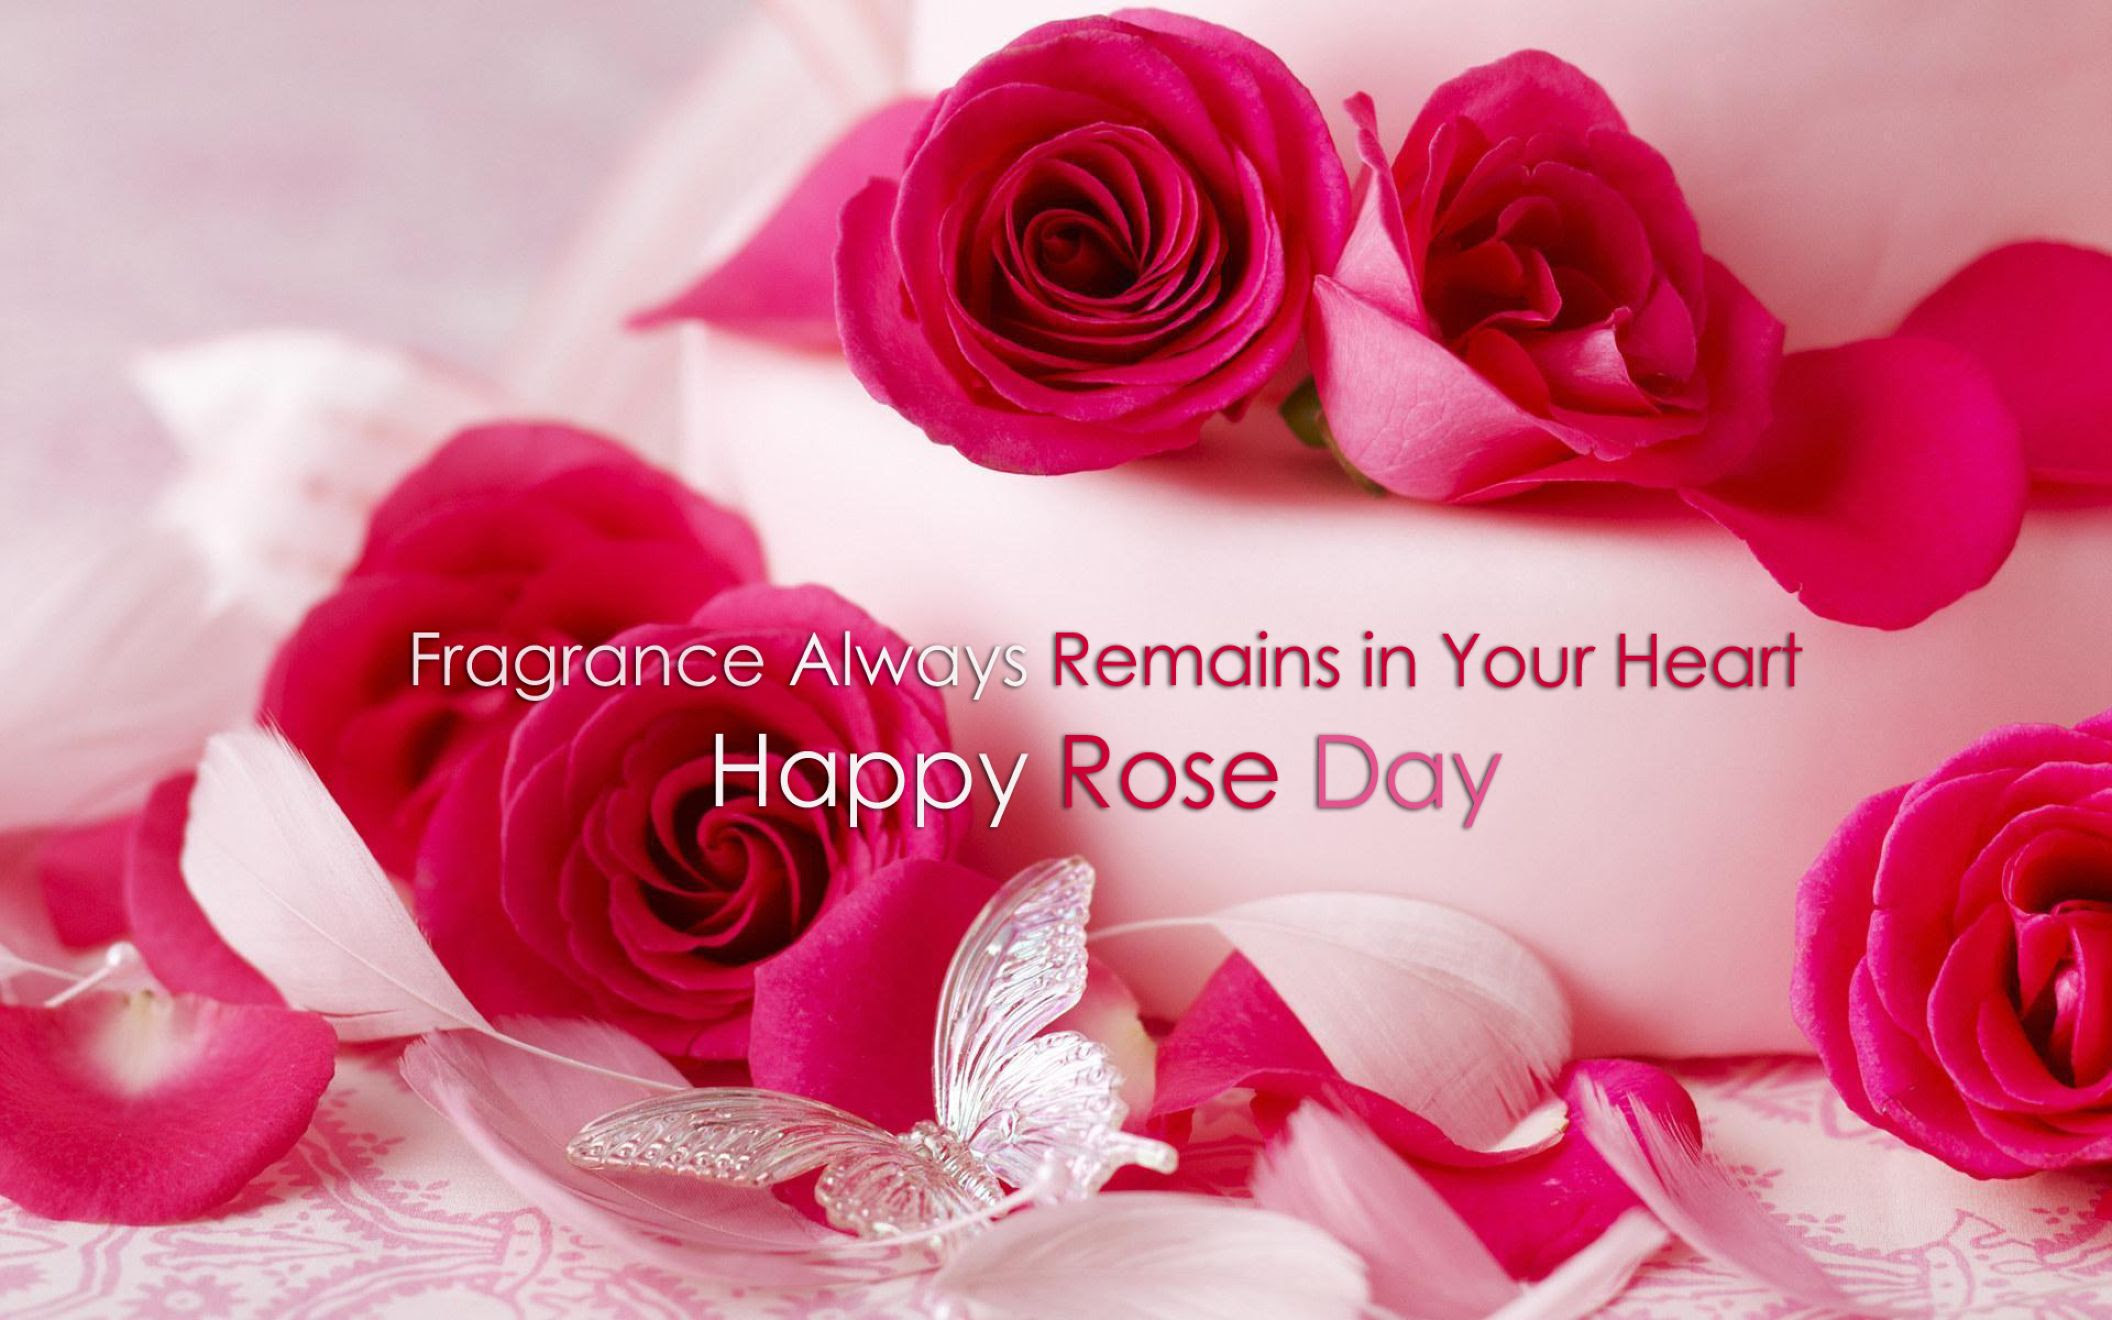 Happy Rose Day 2016 Red Rose With Love Quotes Wallpaper